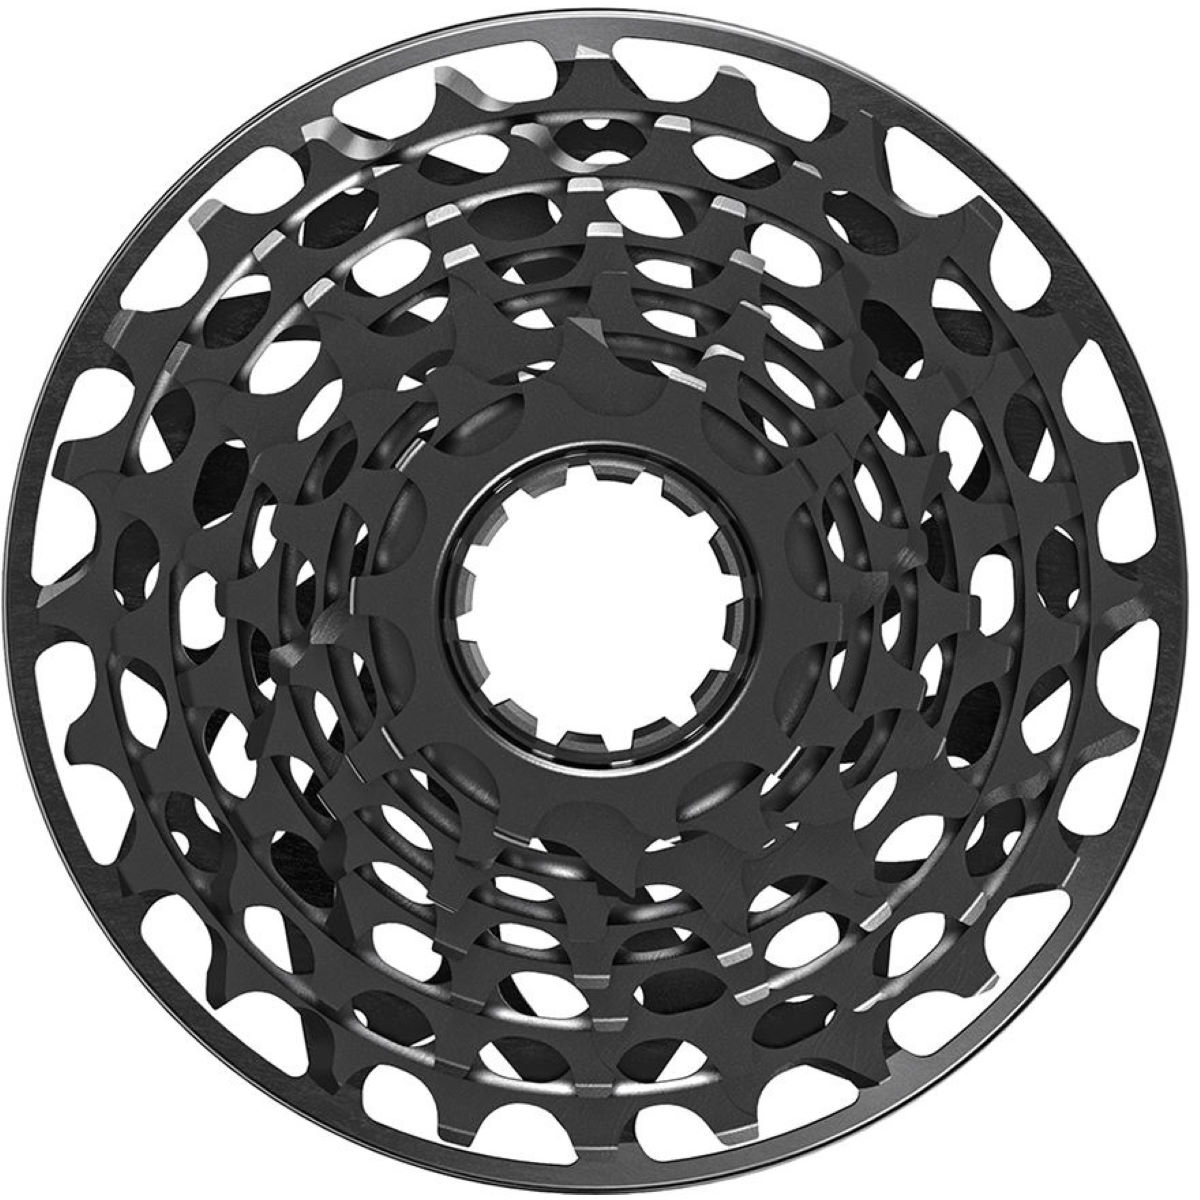 Cassette SRAM X01DH XG-795 7 vitesses - 7 Speed 10-24 Jet Black